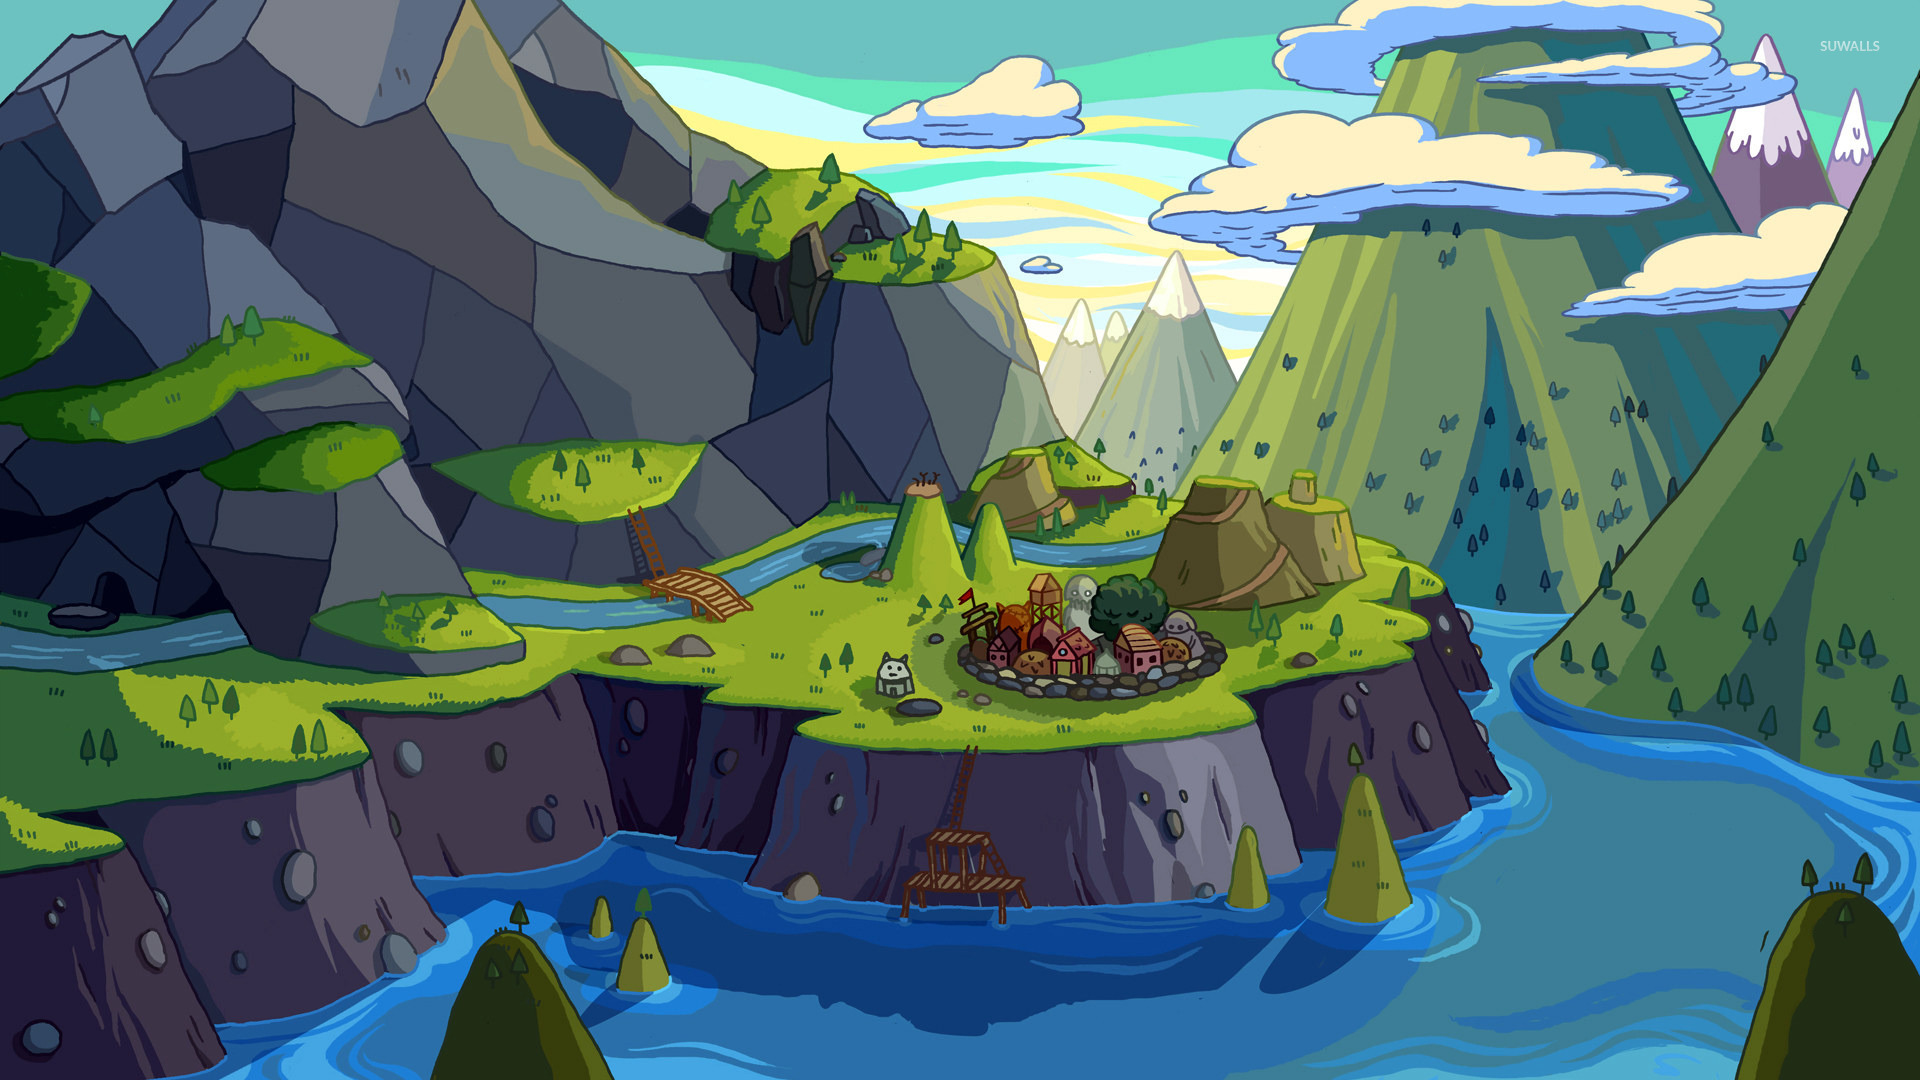 Adventure time 6 wallpaper cartoon wallpapers 16403 adventure time 6 wallpaper thecheapjerseys Choice Image